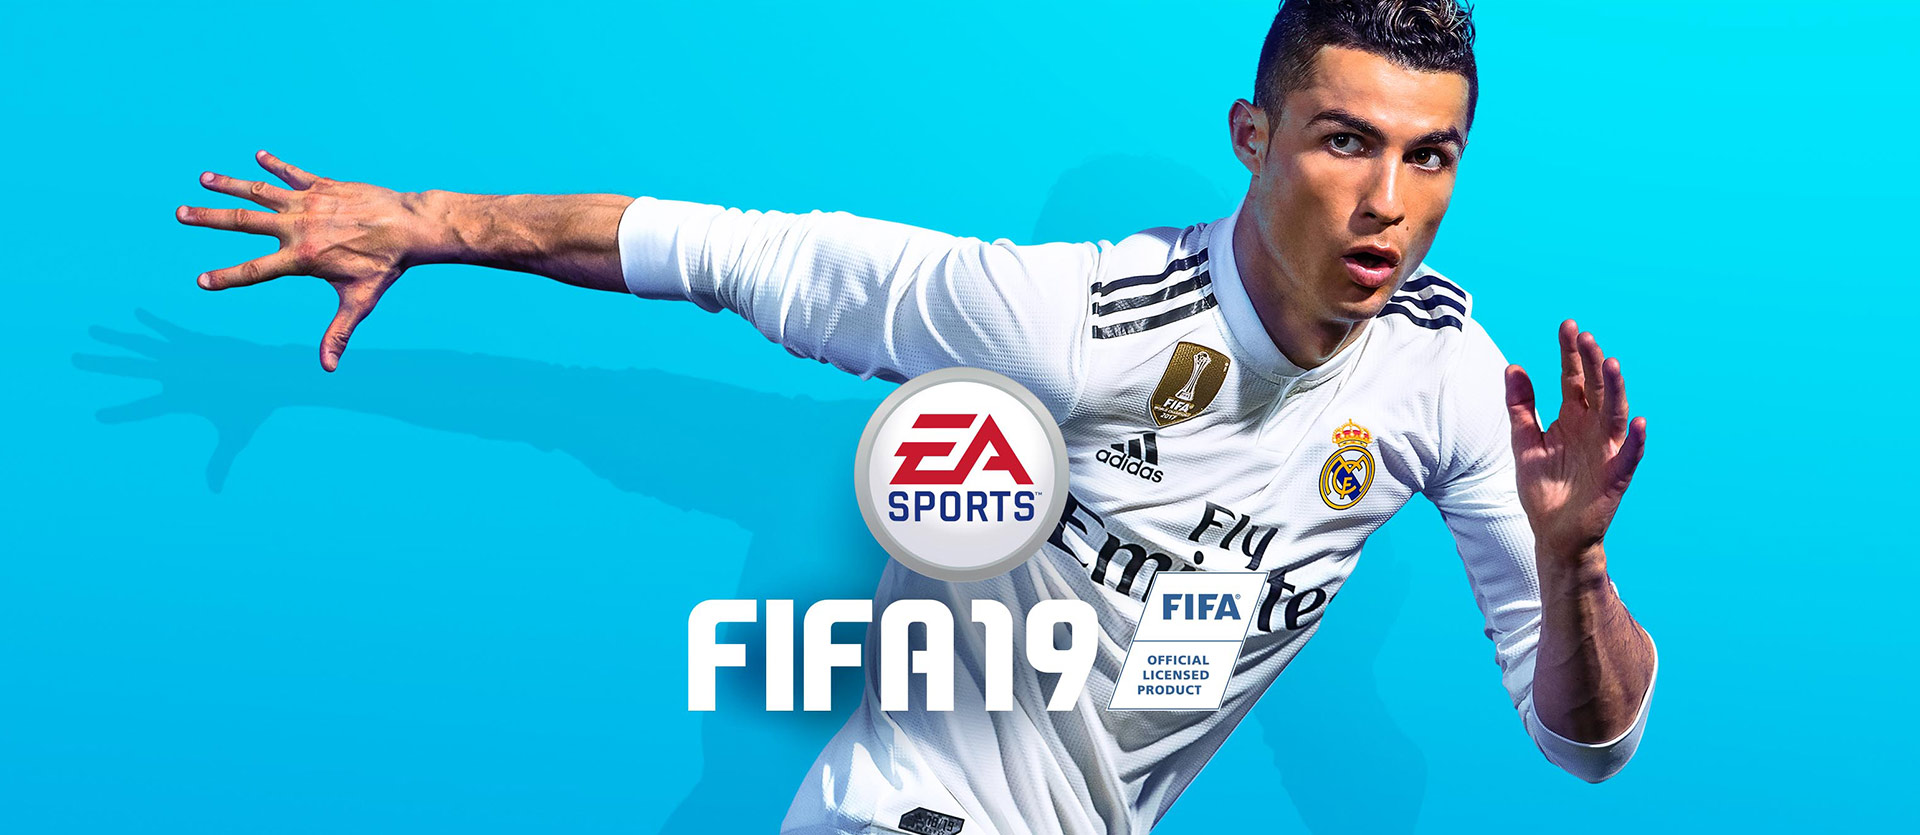 EA Sports FIFA 19, Soccer player on a soccer field